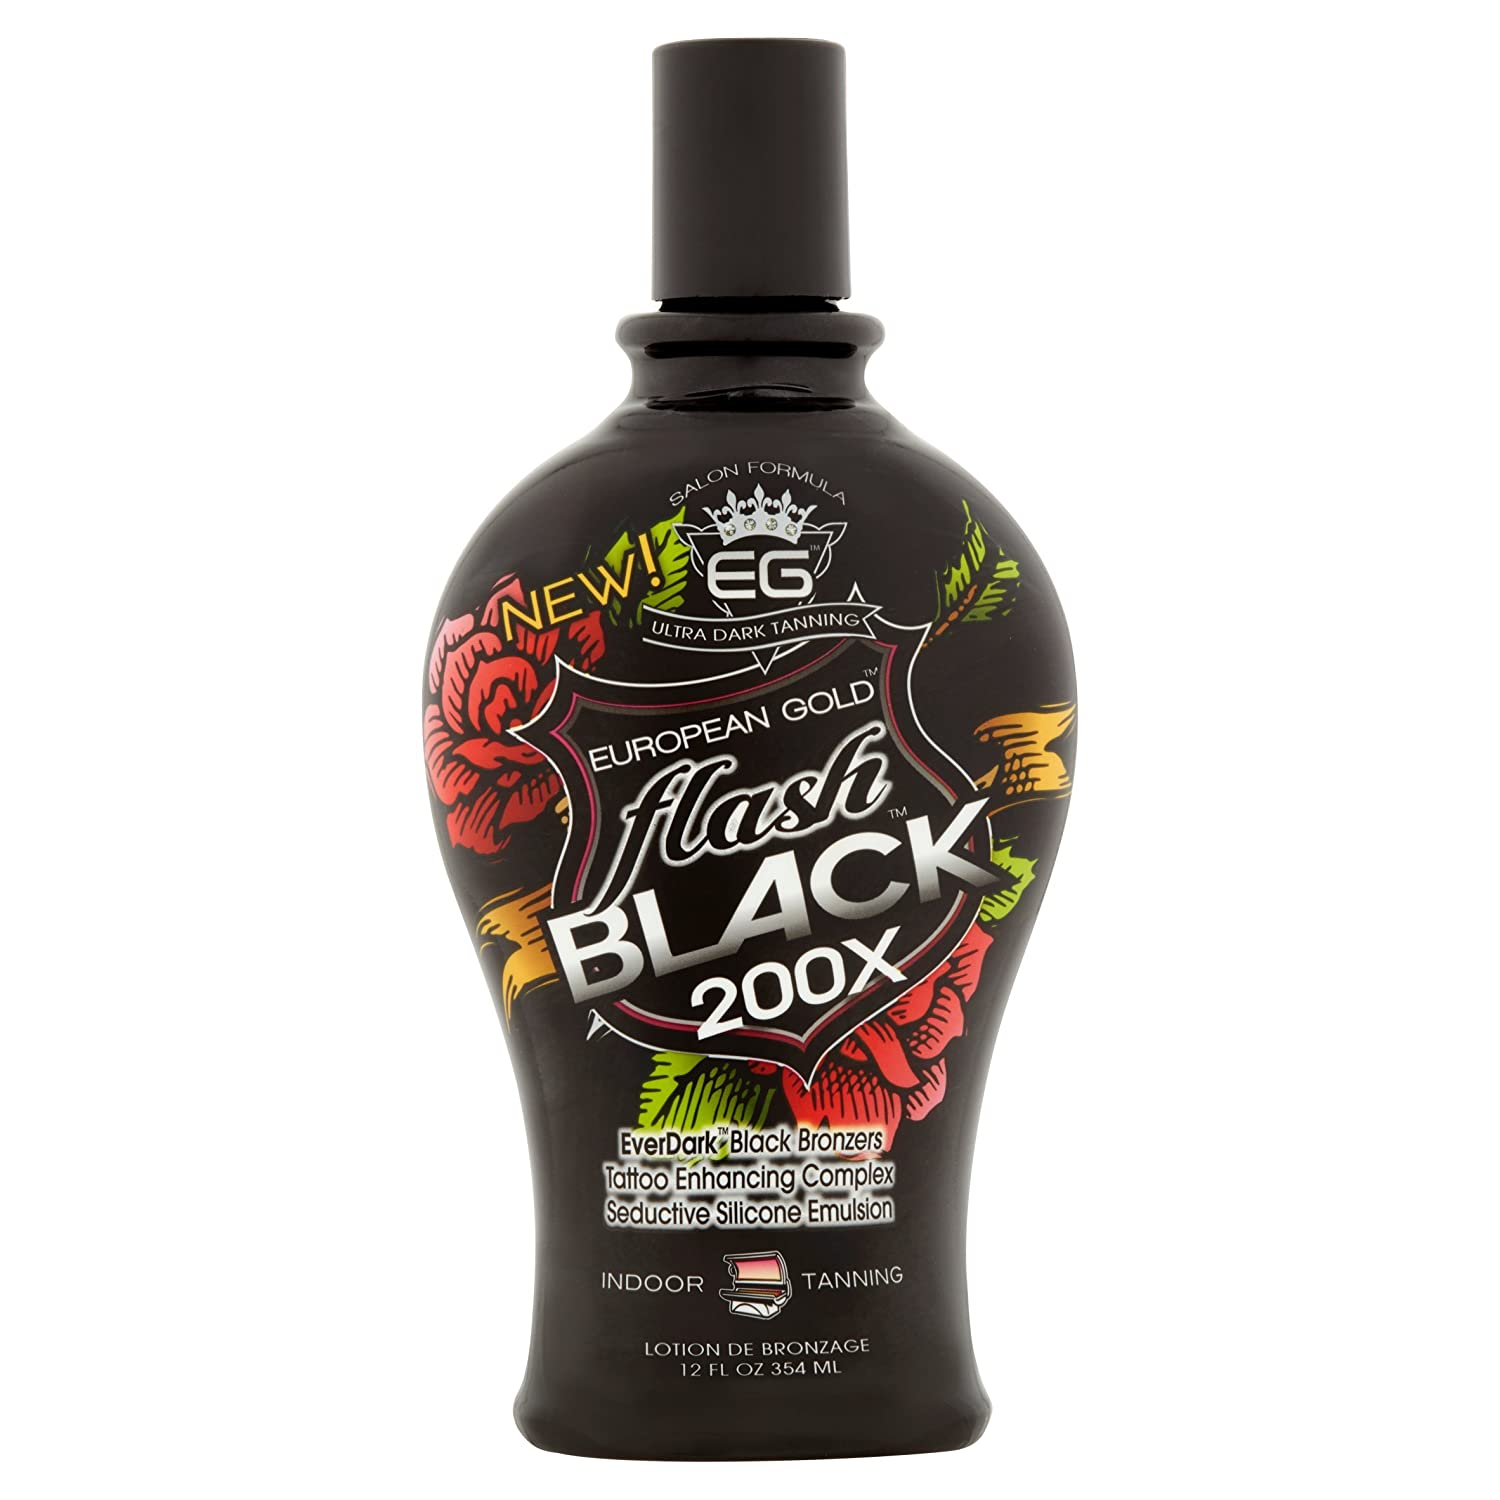 European Gold Save money Flash Black 200x Ever Indoor Lotion Cheap mail order specialty store fl 12 Tanning